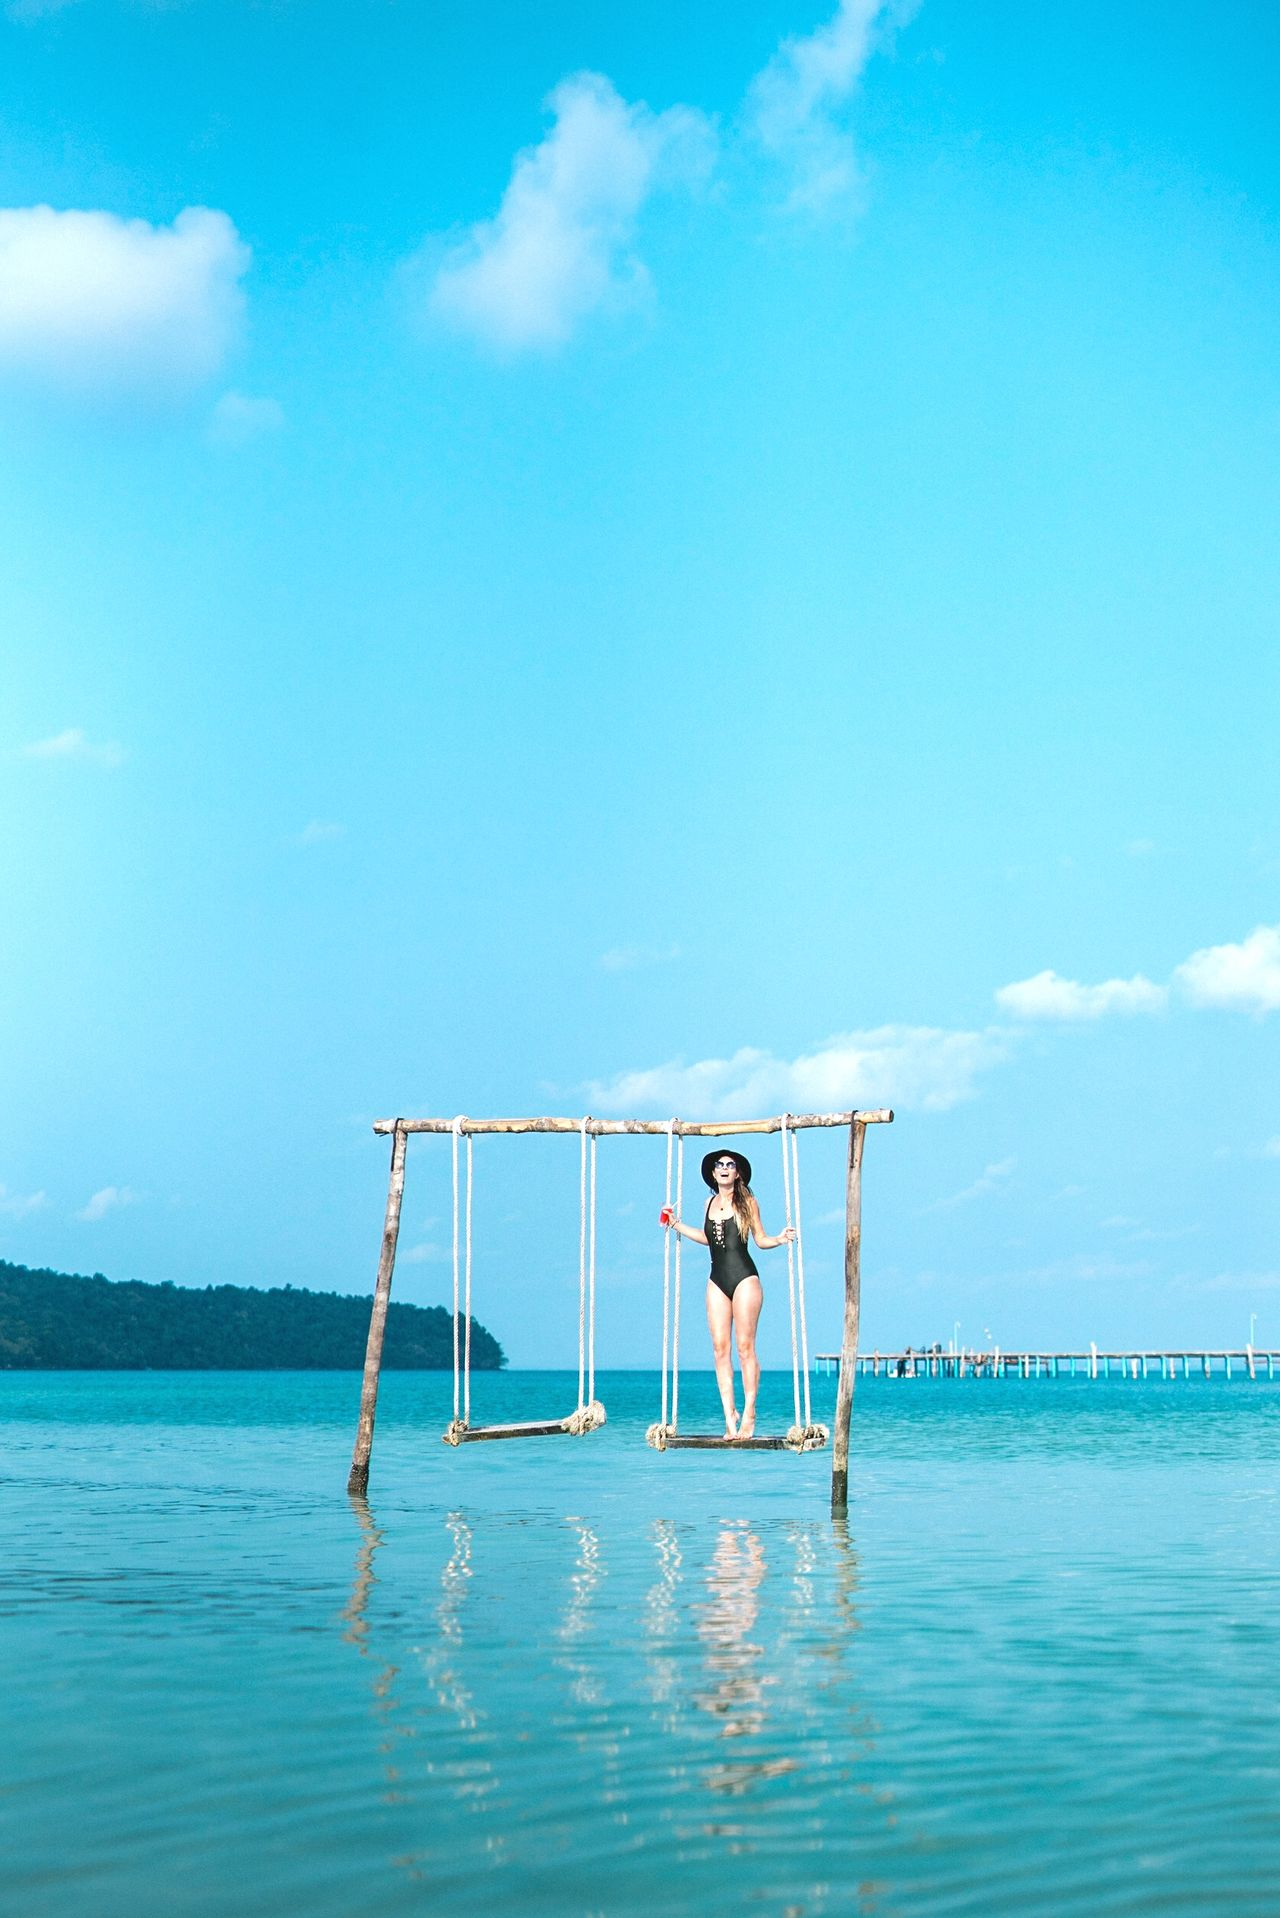 Momentary bliss Blue Sea Sky Activity Water Adults Only Young Adult One Person Full Length Outdoors Adult Sport People Day Vacations Horizon Over Water Nature Travel Photography ASIA Showcase: April Cambodia Fun Dreamy Relaxation Summer The Secret Spaces